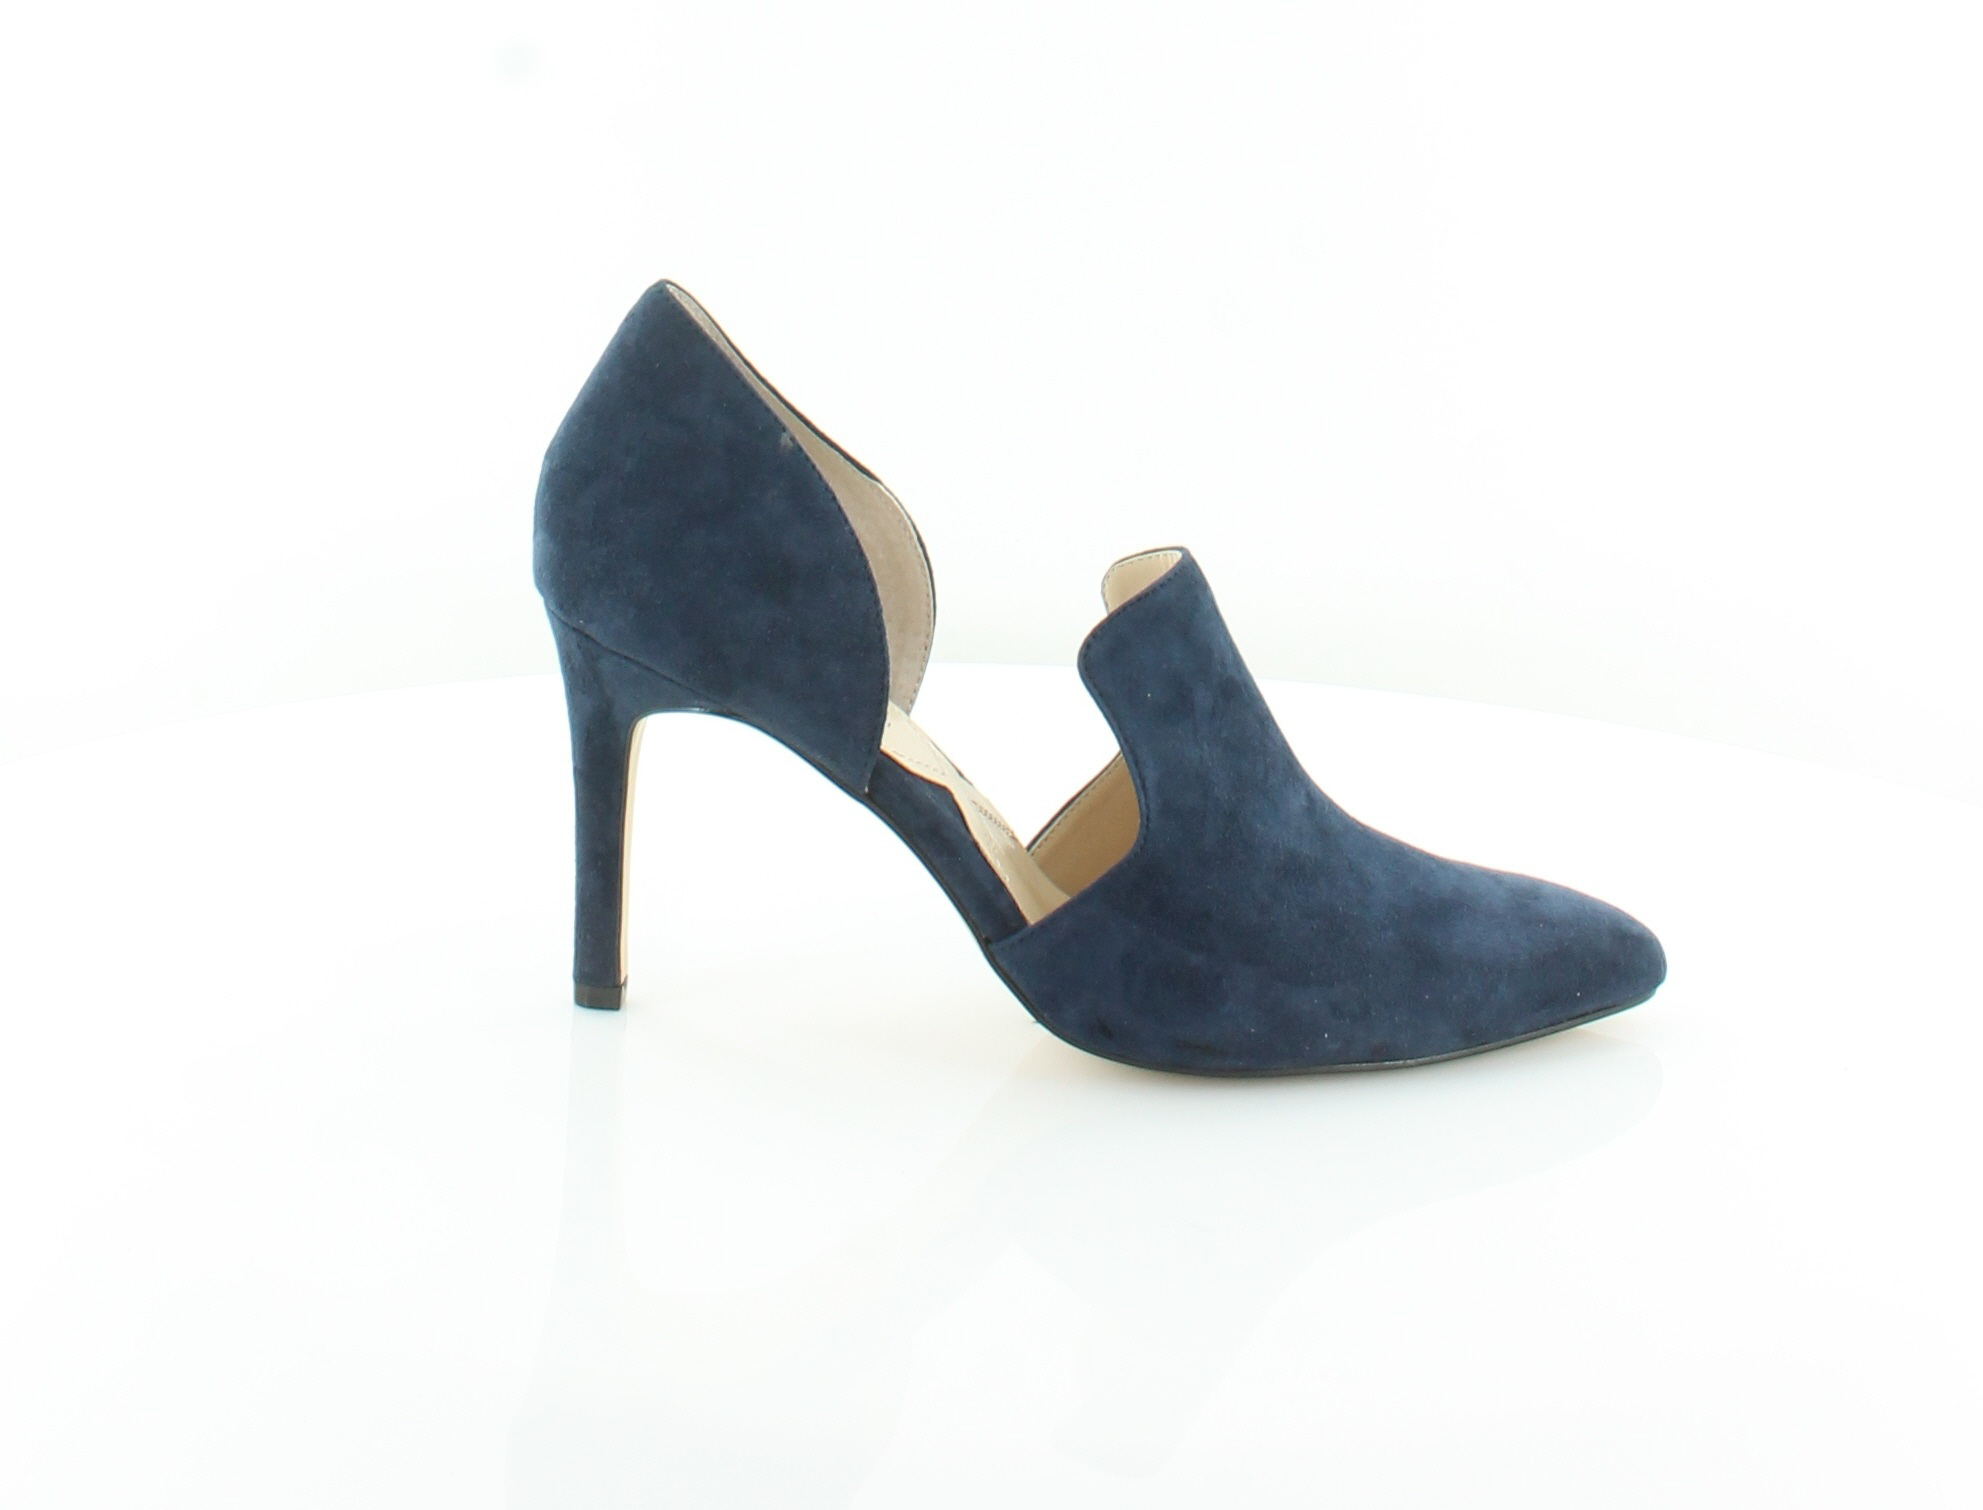 Adrienne Vittadini New Nicolo bluee Womens shoes Size 7.5 M Heels MSRP  110